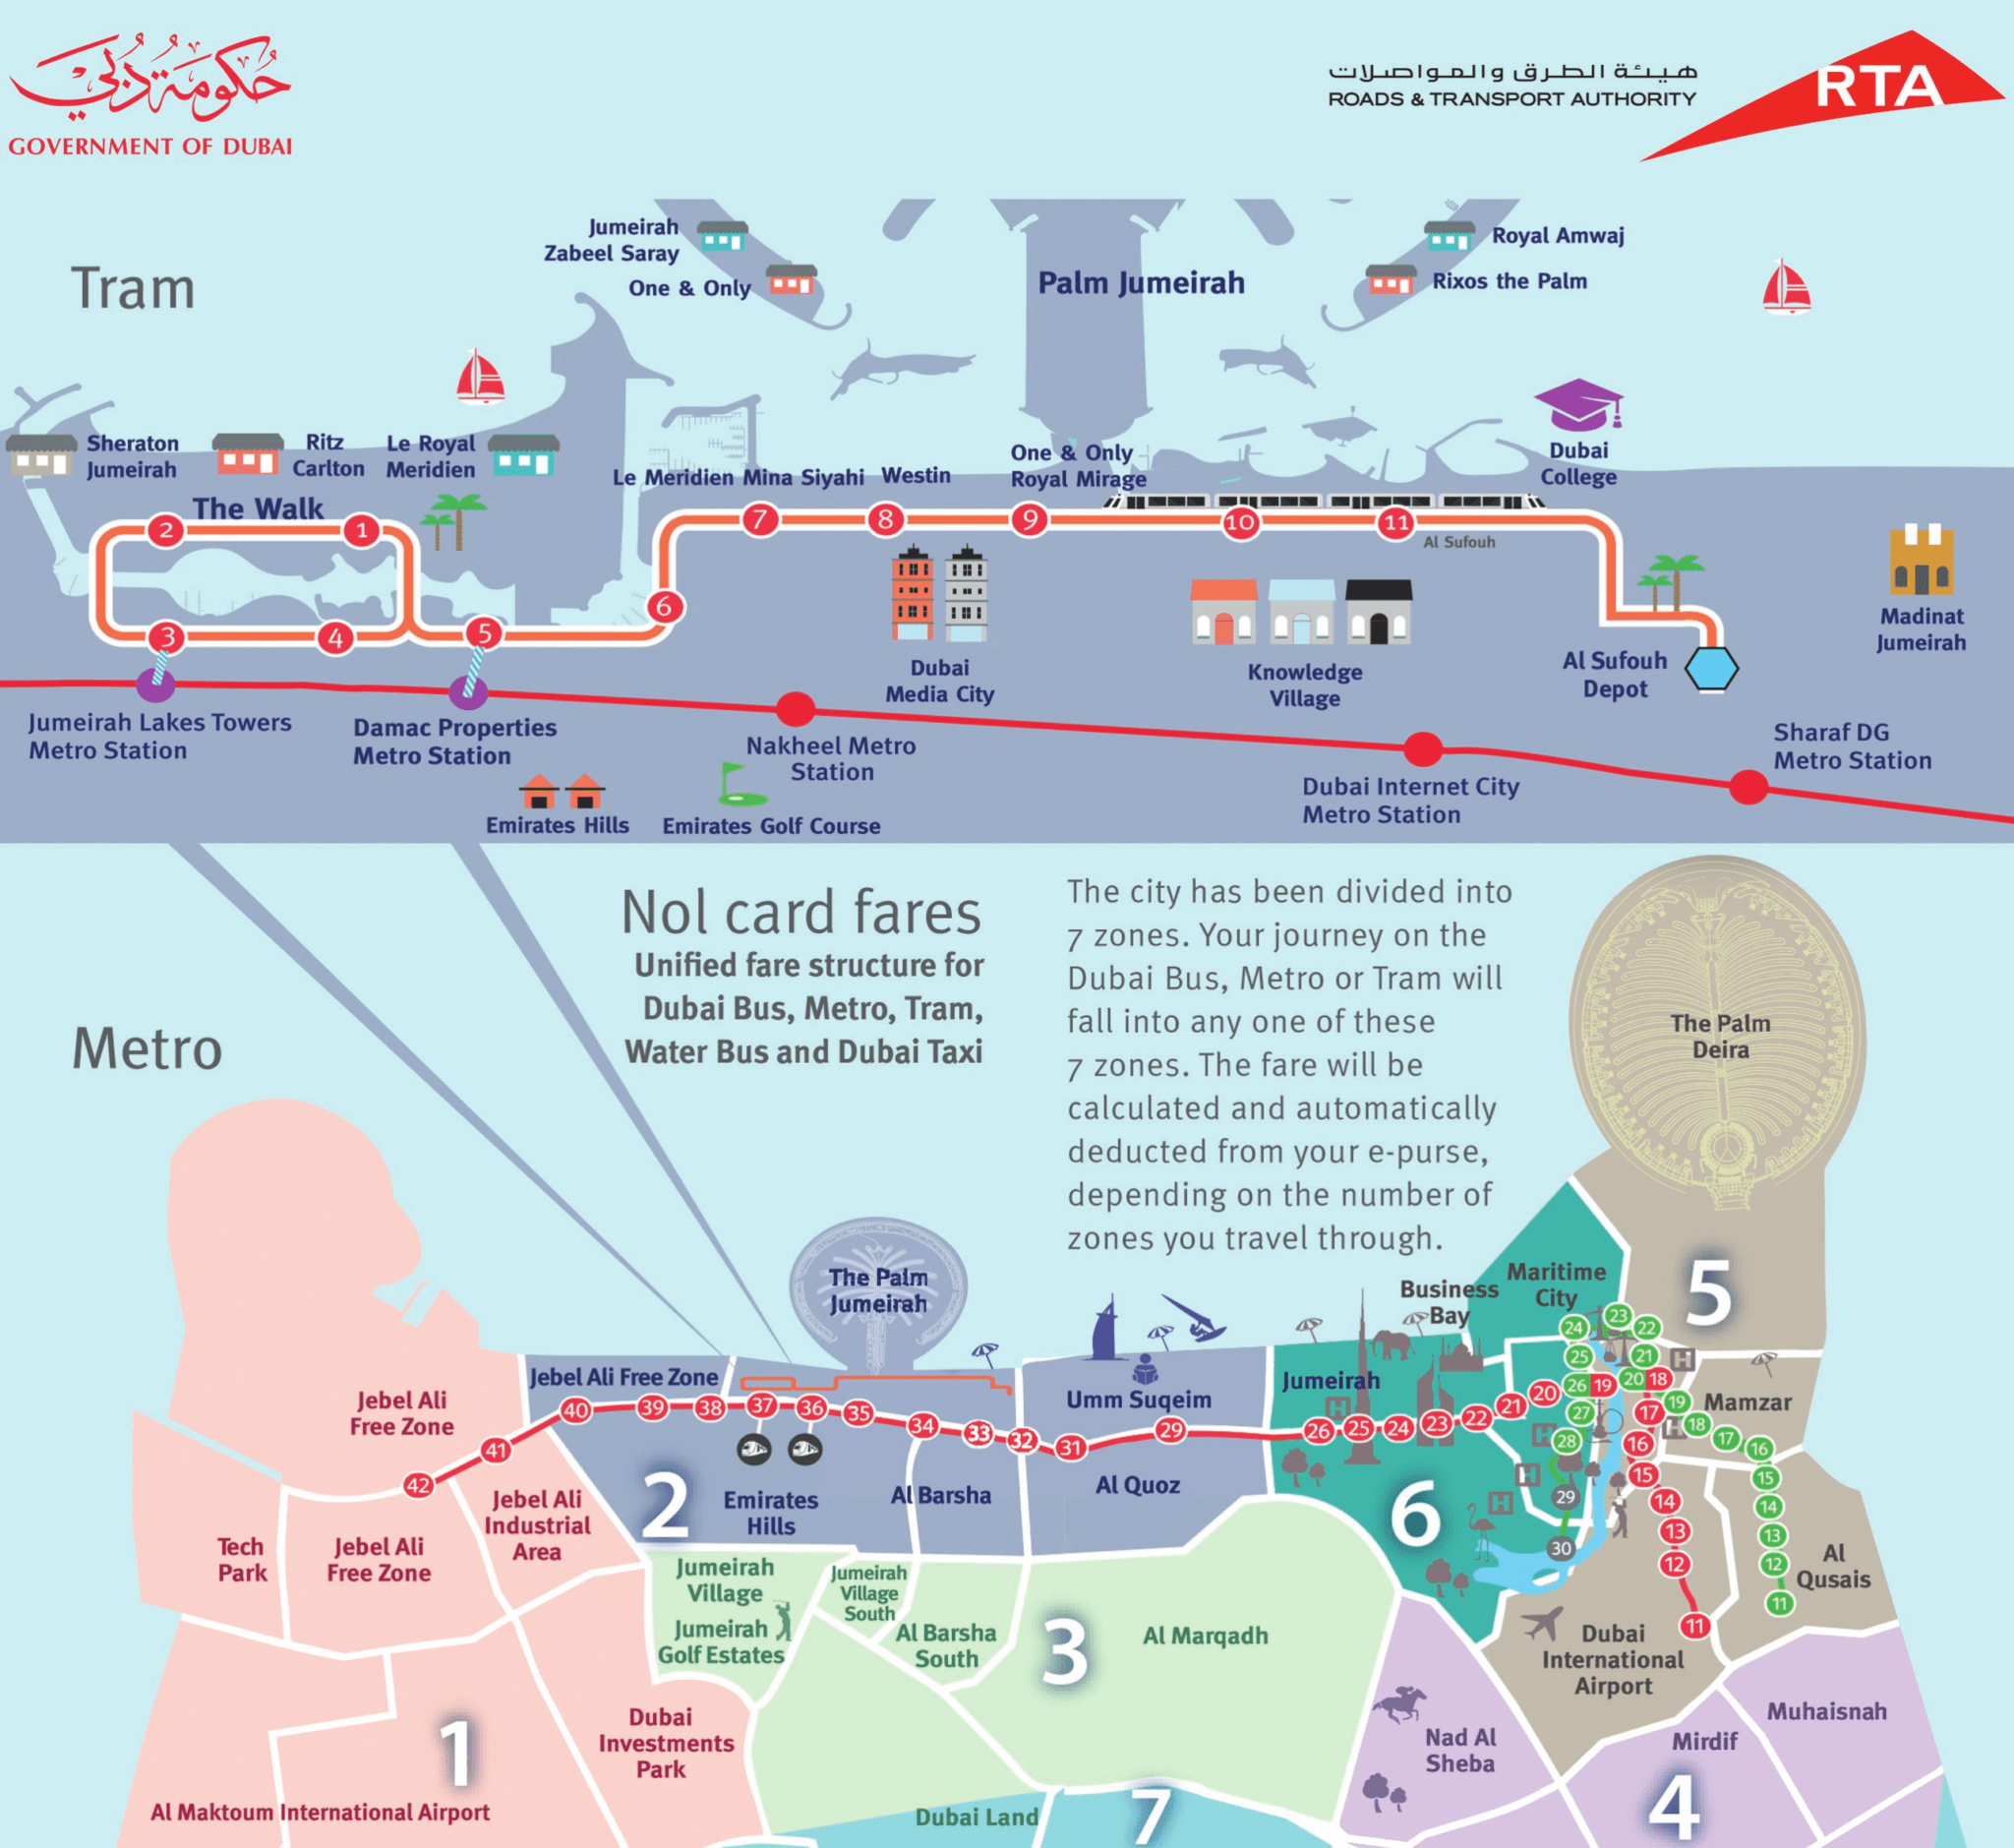 Dubai Bus Routes, Fares & Timings - 2019 Guide